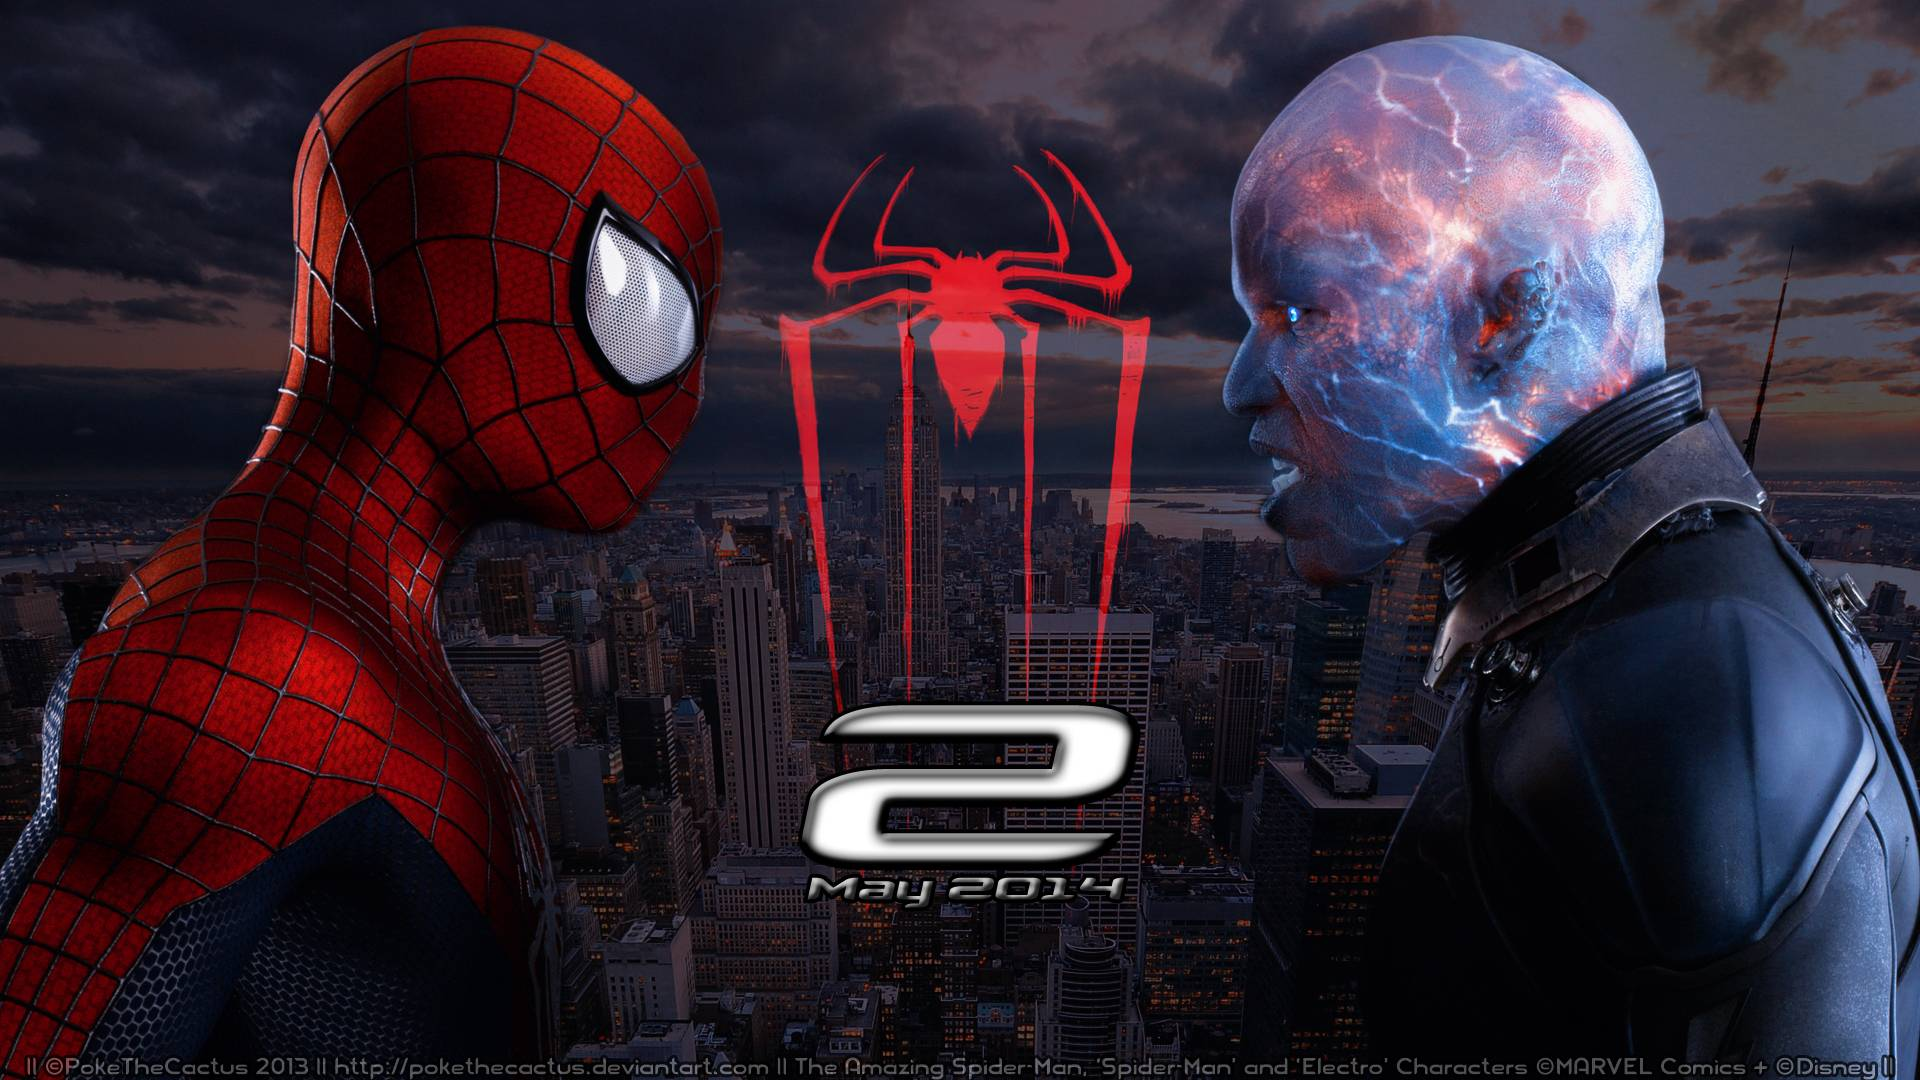 2014 The Amazing Spider Man Wallpaper 1920x1080 28268